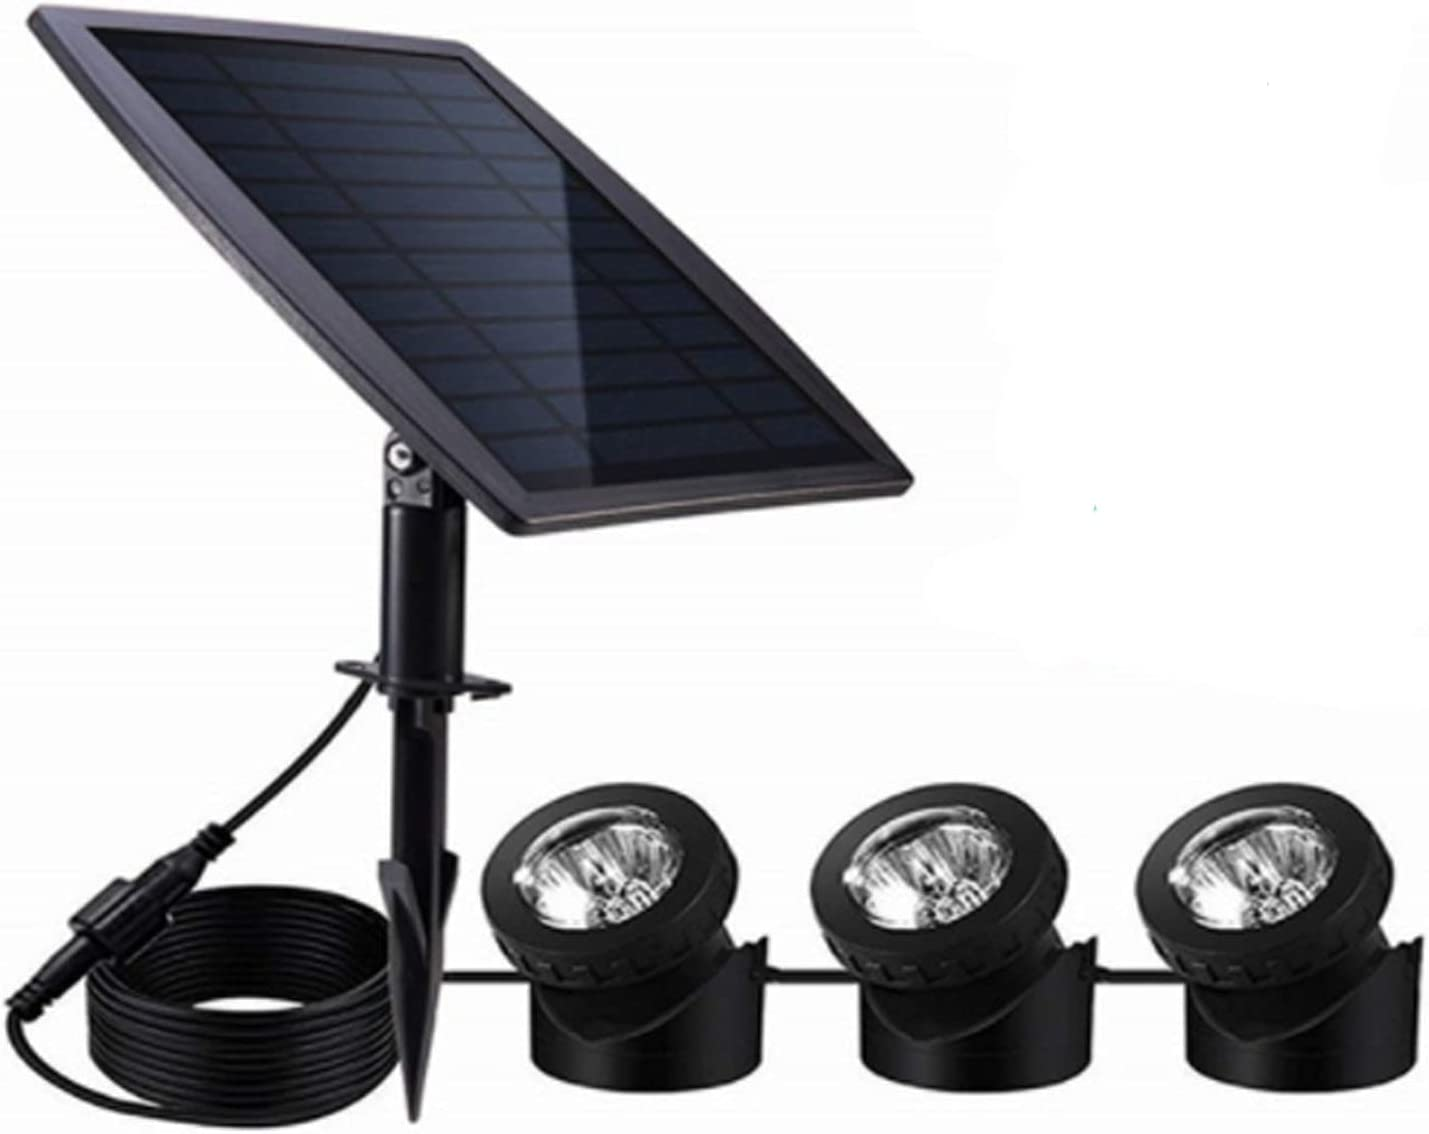 Solar Pond Lights Outdoor Landscape New life LED Submersible Waterproof Cheap mail order specialty store